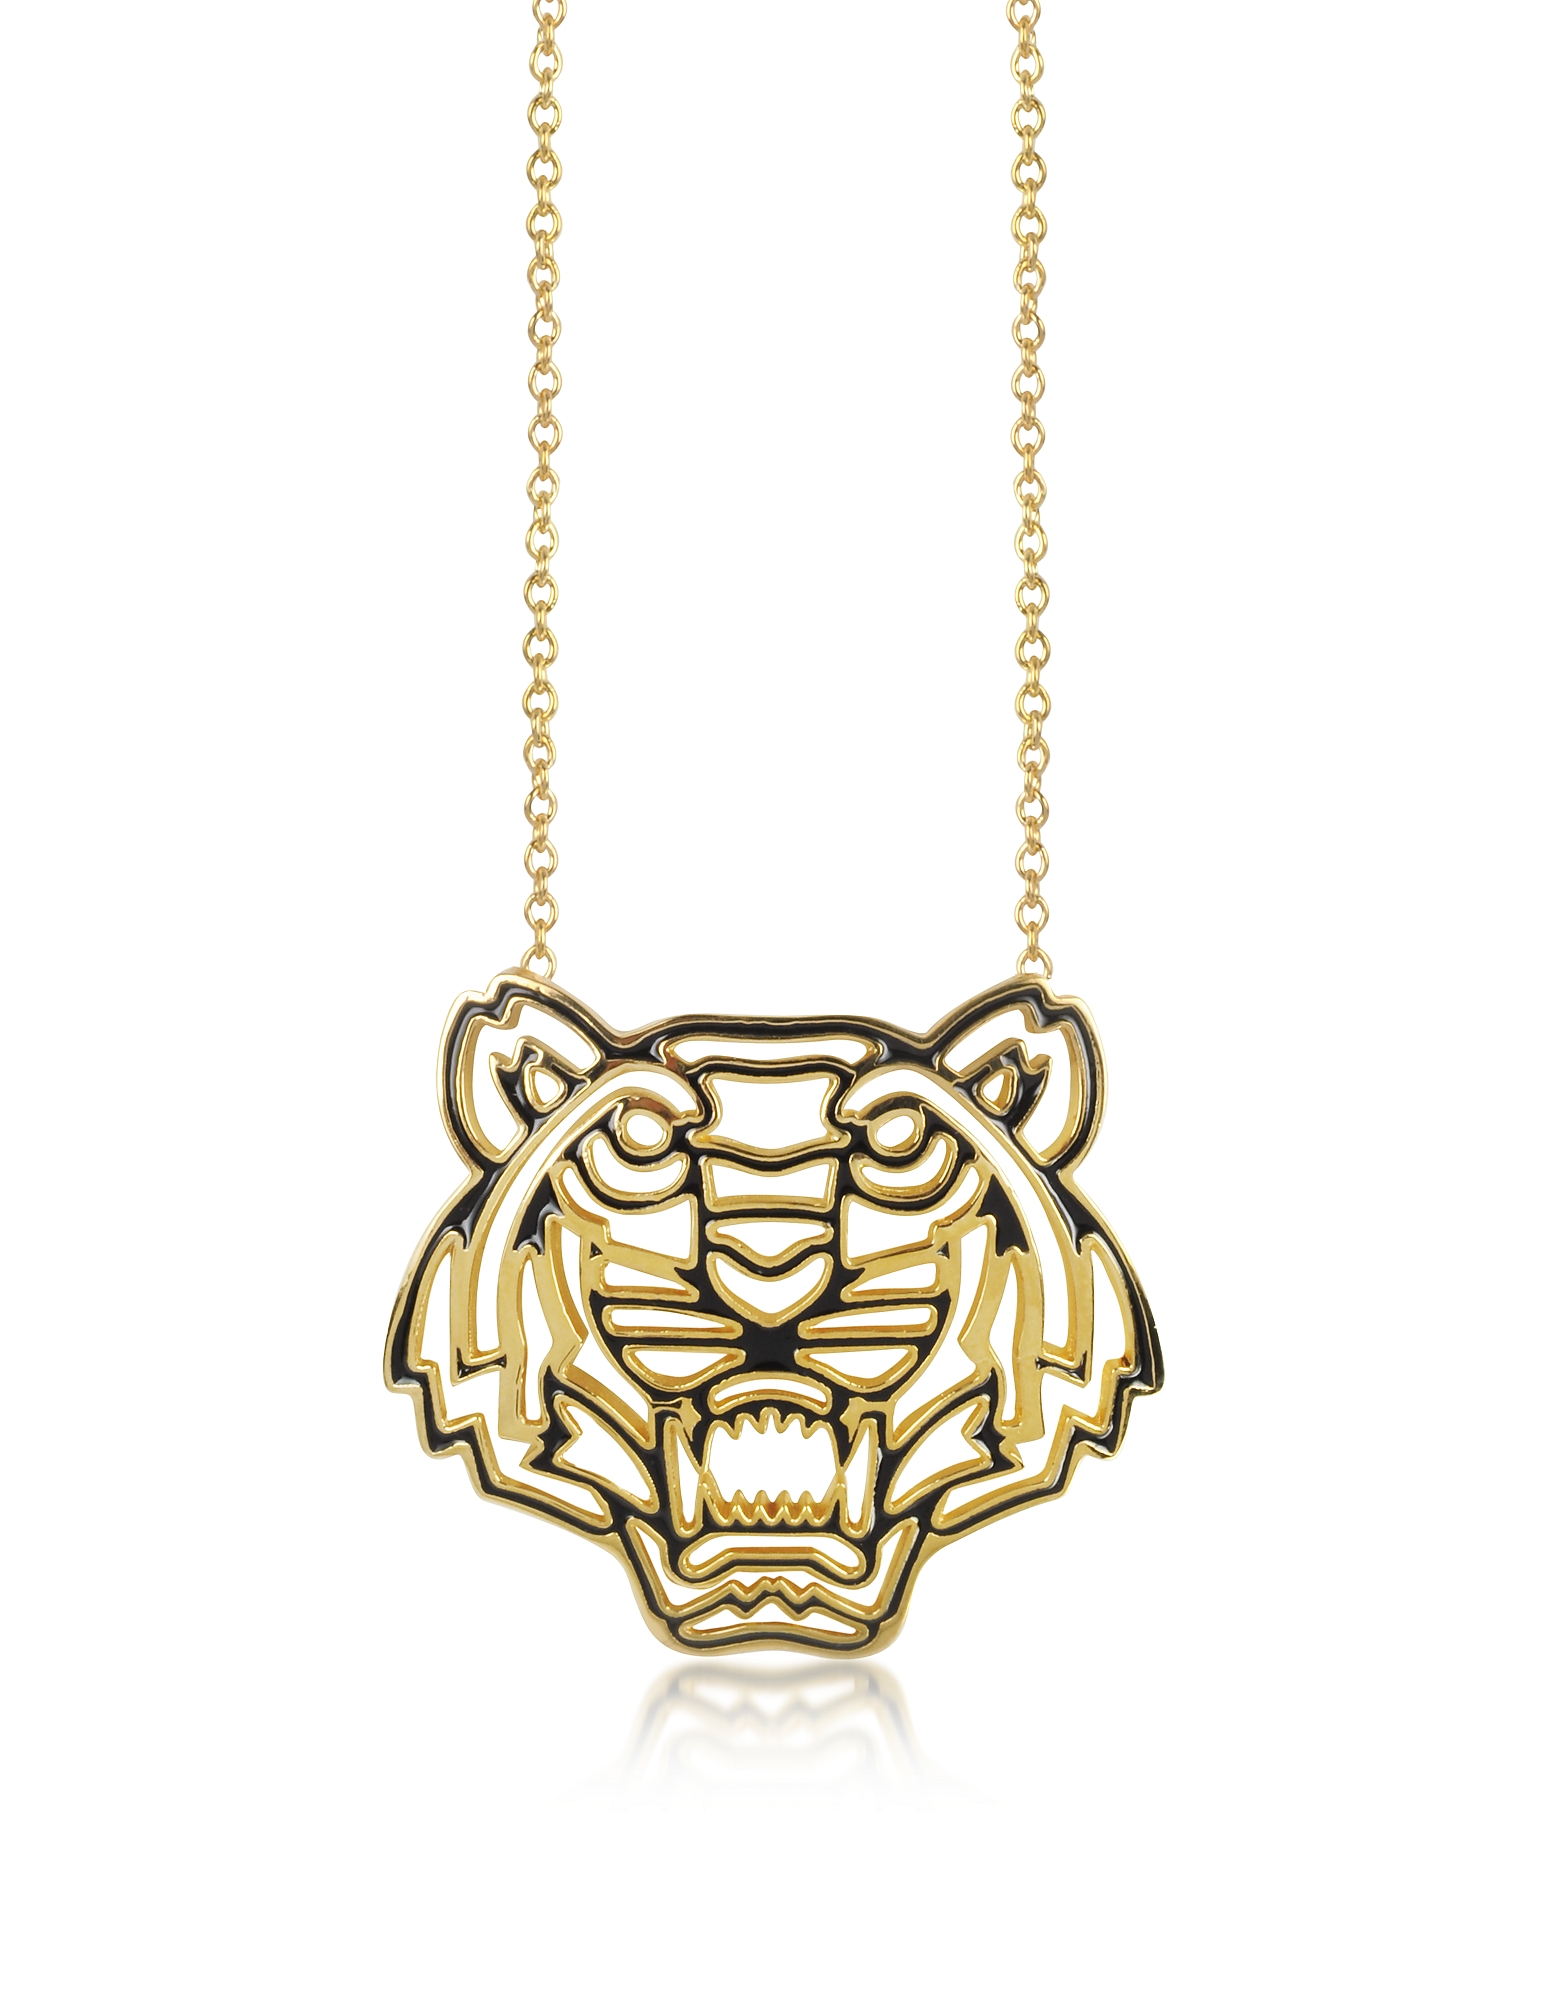 Kenzo Necklaces, Gold Plated and Black Lacquer Tiger Head Necklace